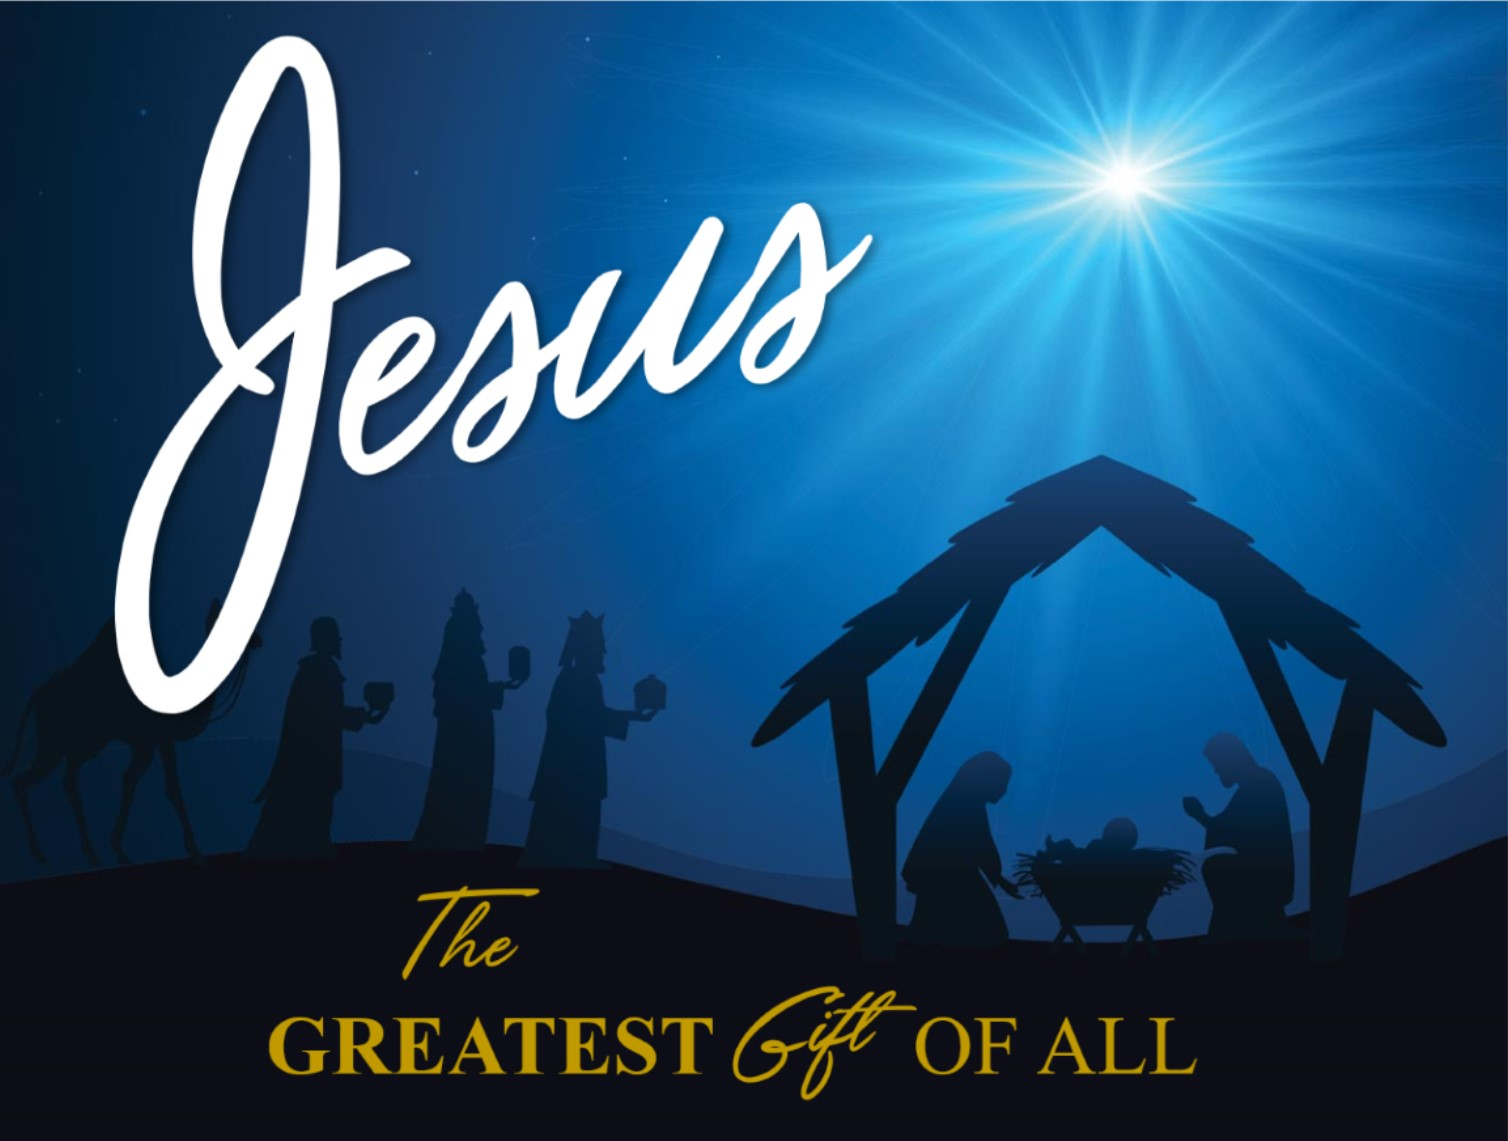 jesus-the-greatest-gift-of-all-2.jpg